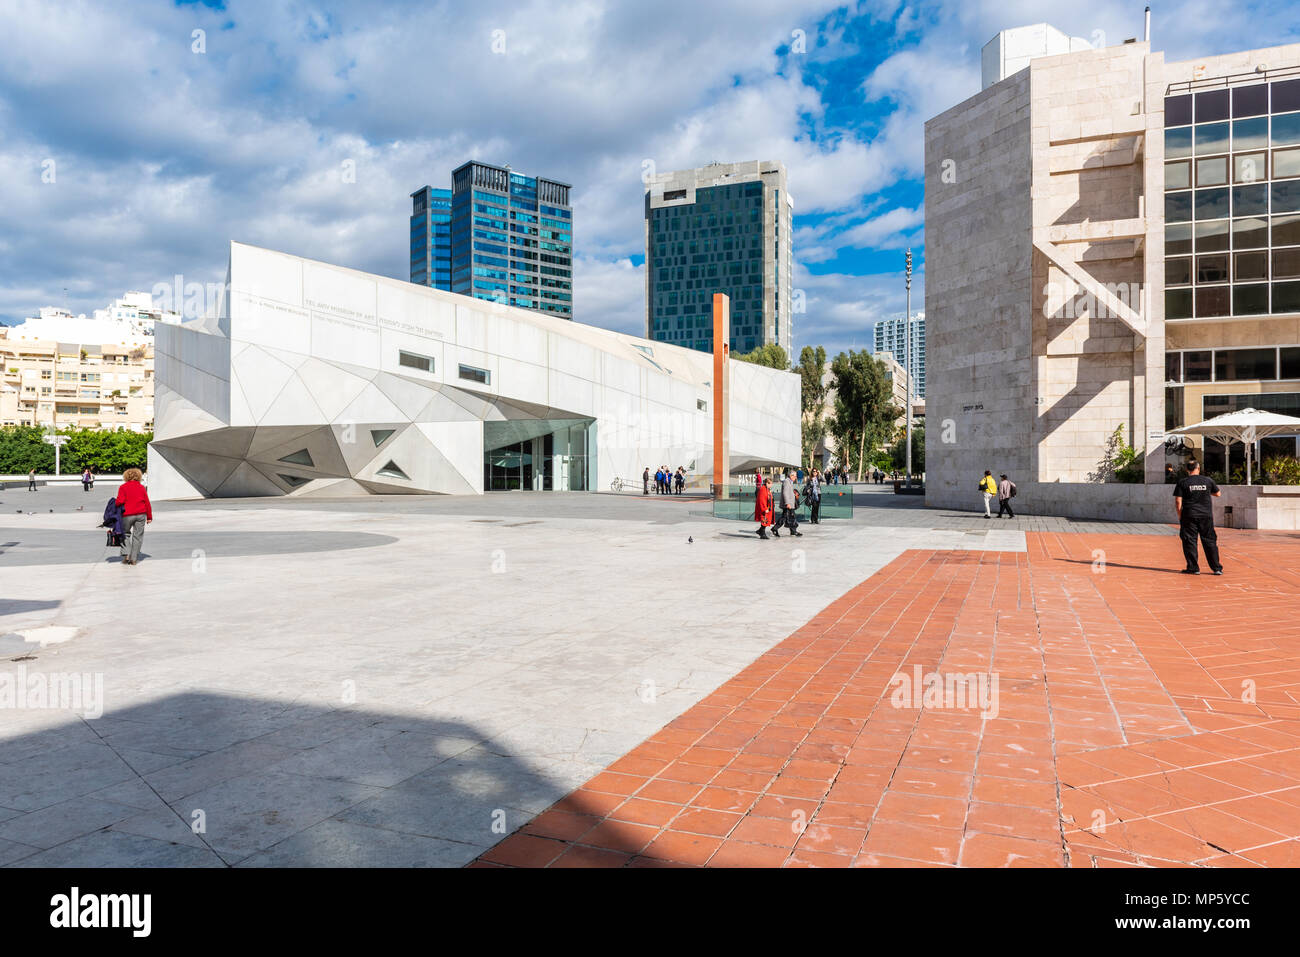 Israel, Tel Aviv-Yafo - November 24, 2017: Exterior view of the Herta and Paul Amir building - the new wing of the Tel Aviv museum of art - designed b - Stock Image